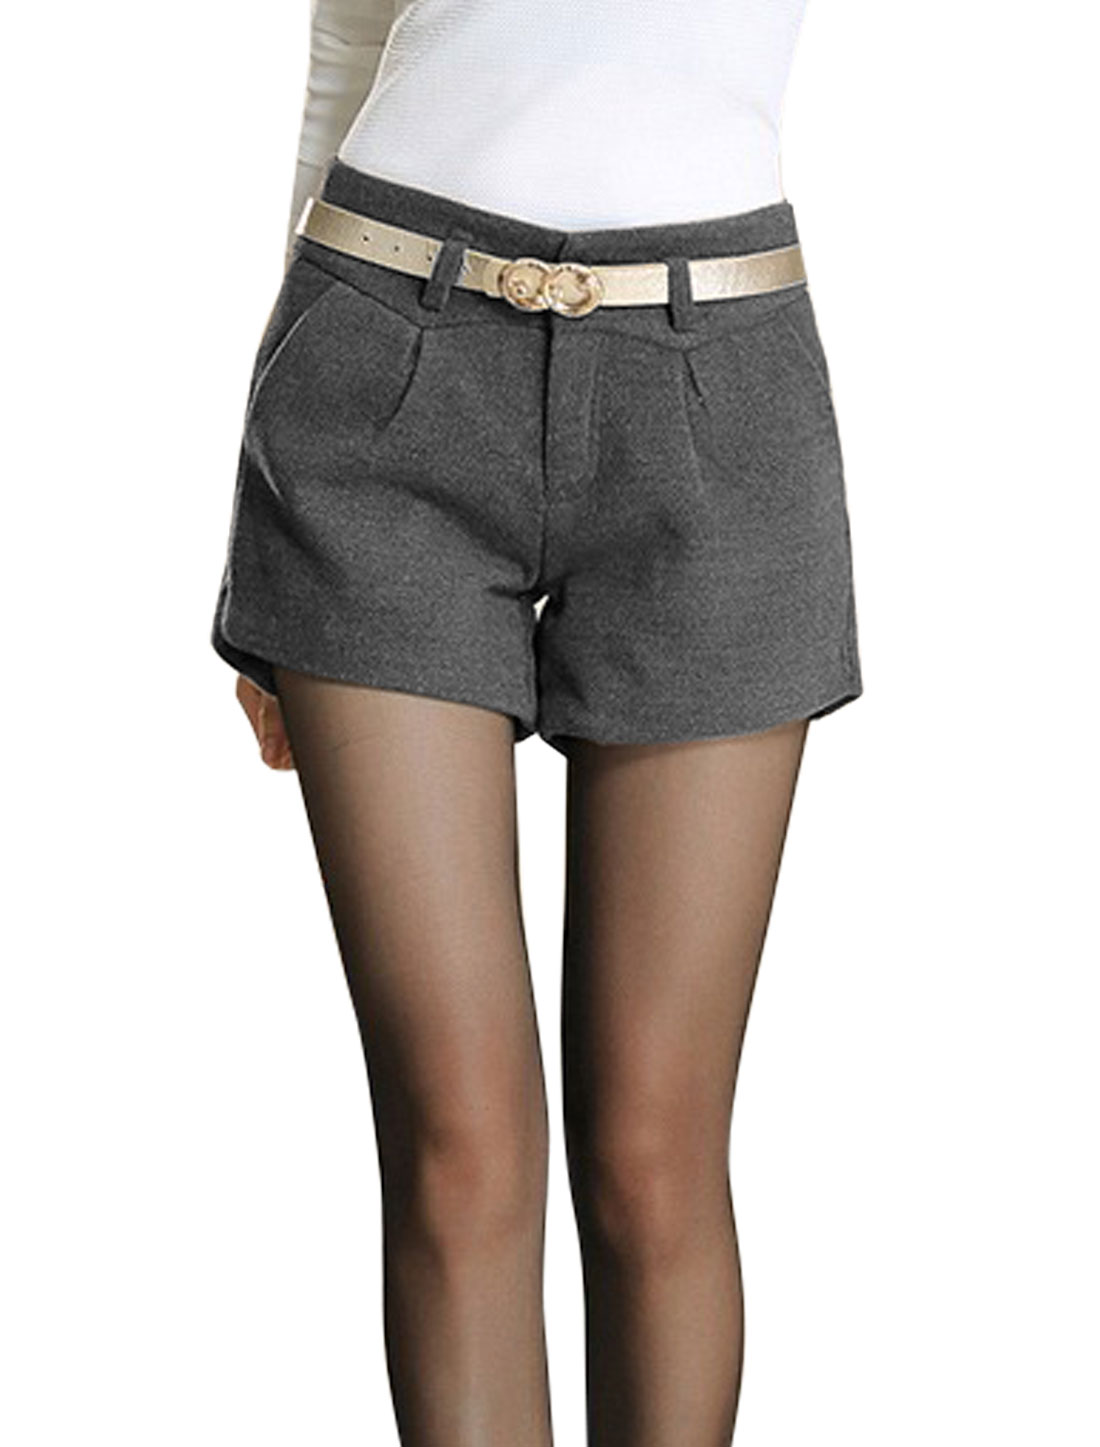 Lady Fashion Style Belt Loop Zip Fly Casual Shorts Gray M